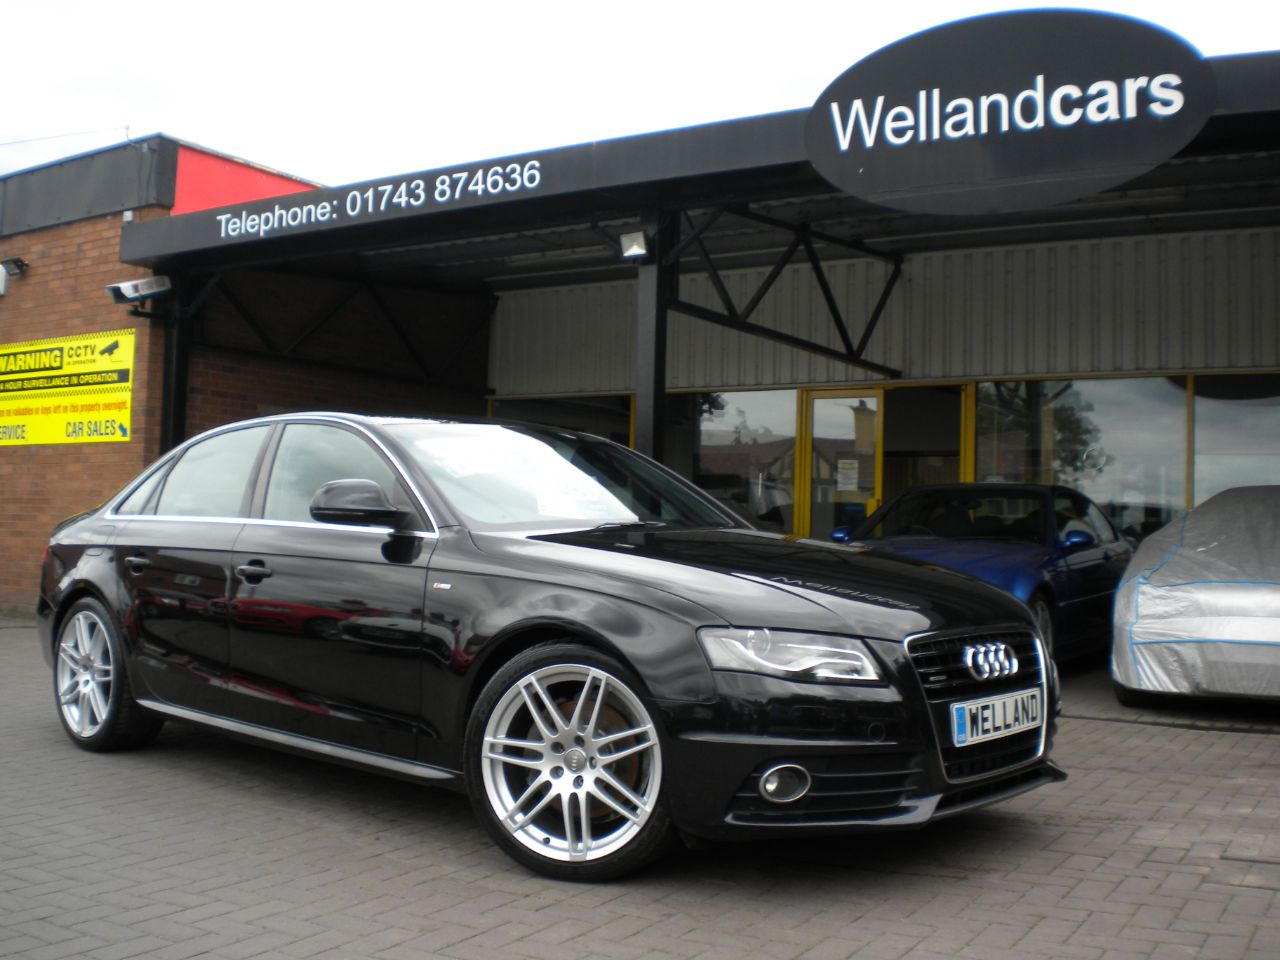 Audi A4 3.0 TDI Quattro S Line 4dr 6 Speed, F/S/H, 19`Alloys, Leather, 1 Owner # 15 MONTH WARRANTY INCLUDED Saloon Diesel Metallic Black at Welland Cars Shrewsbury